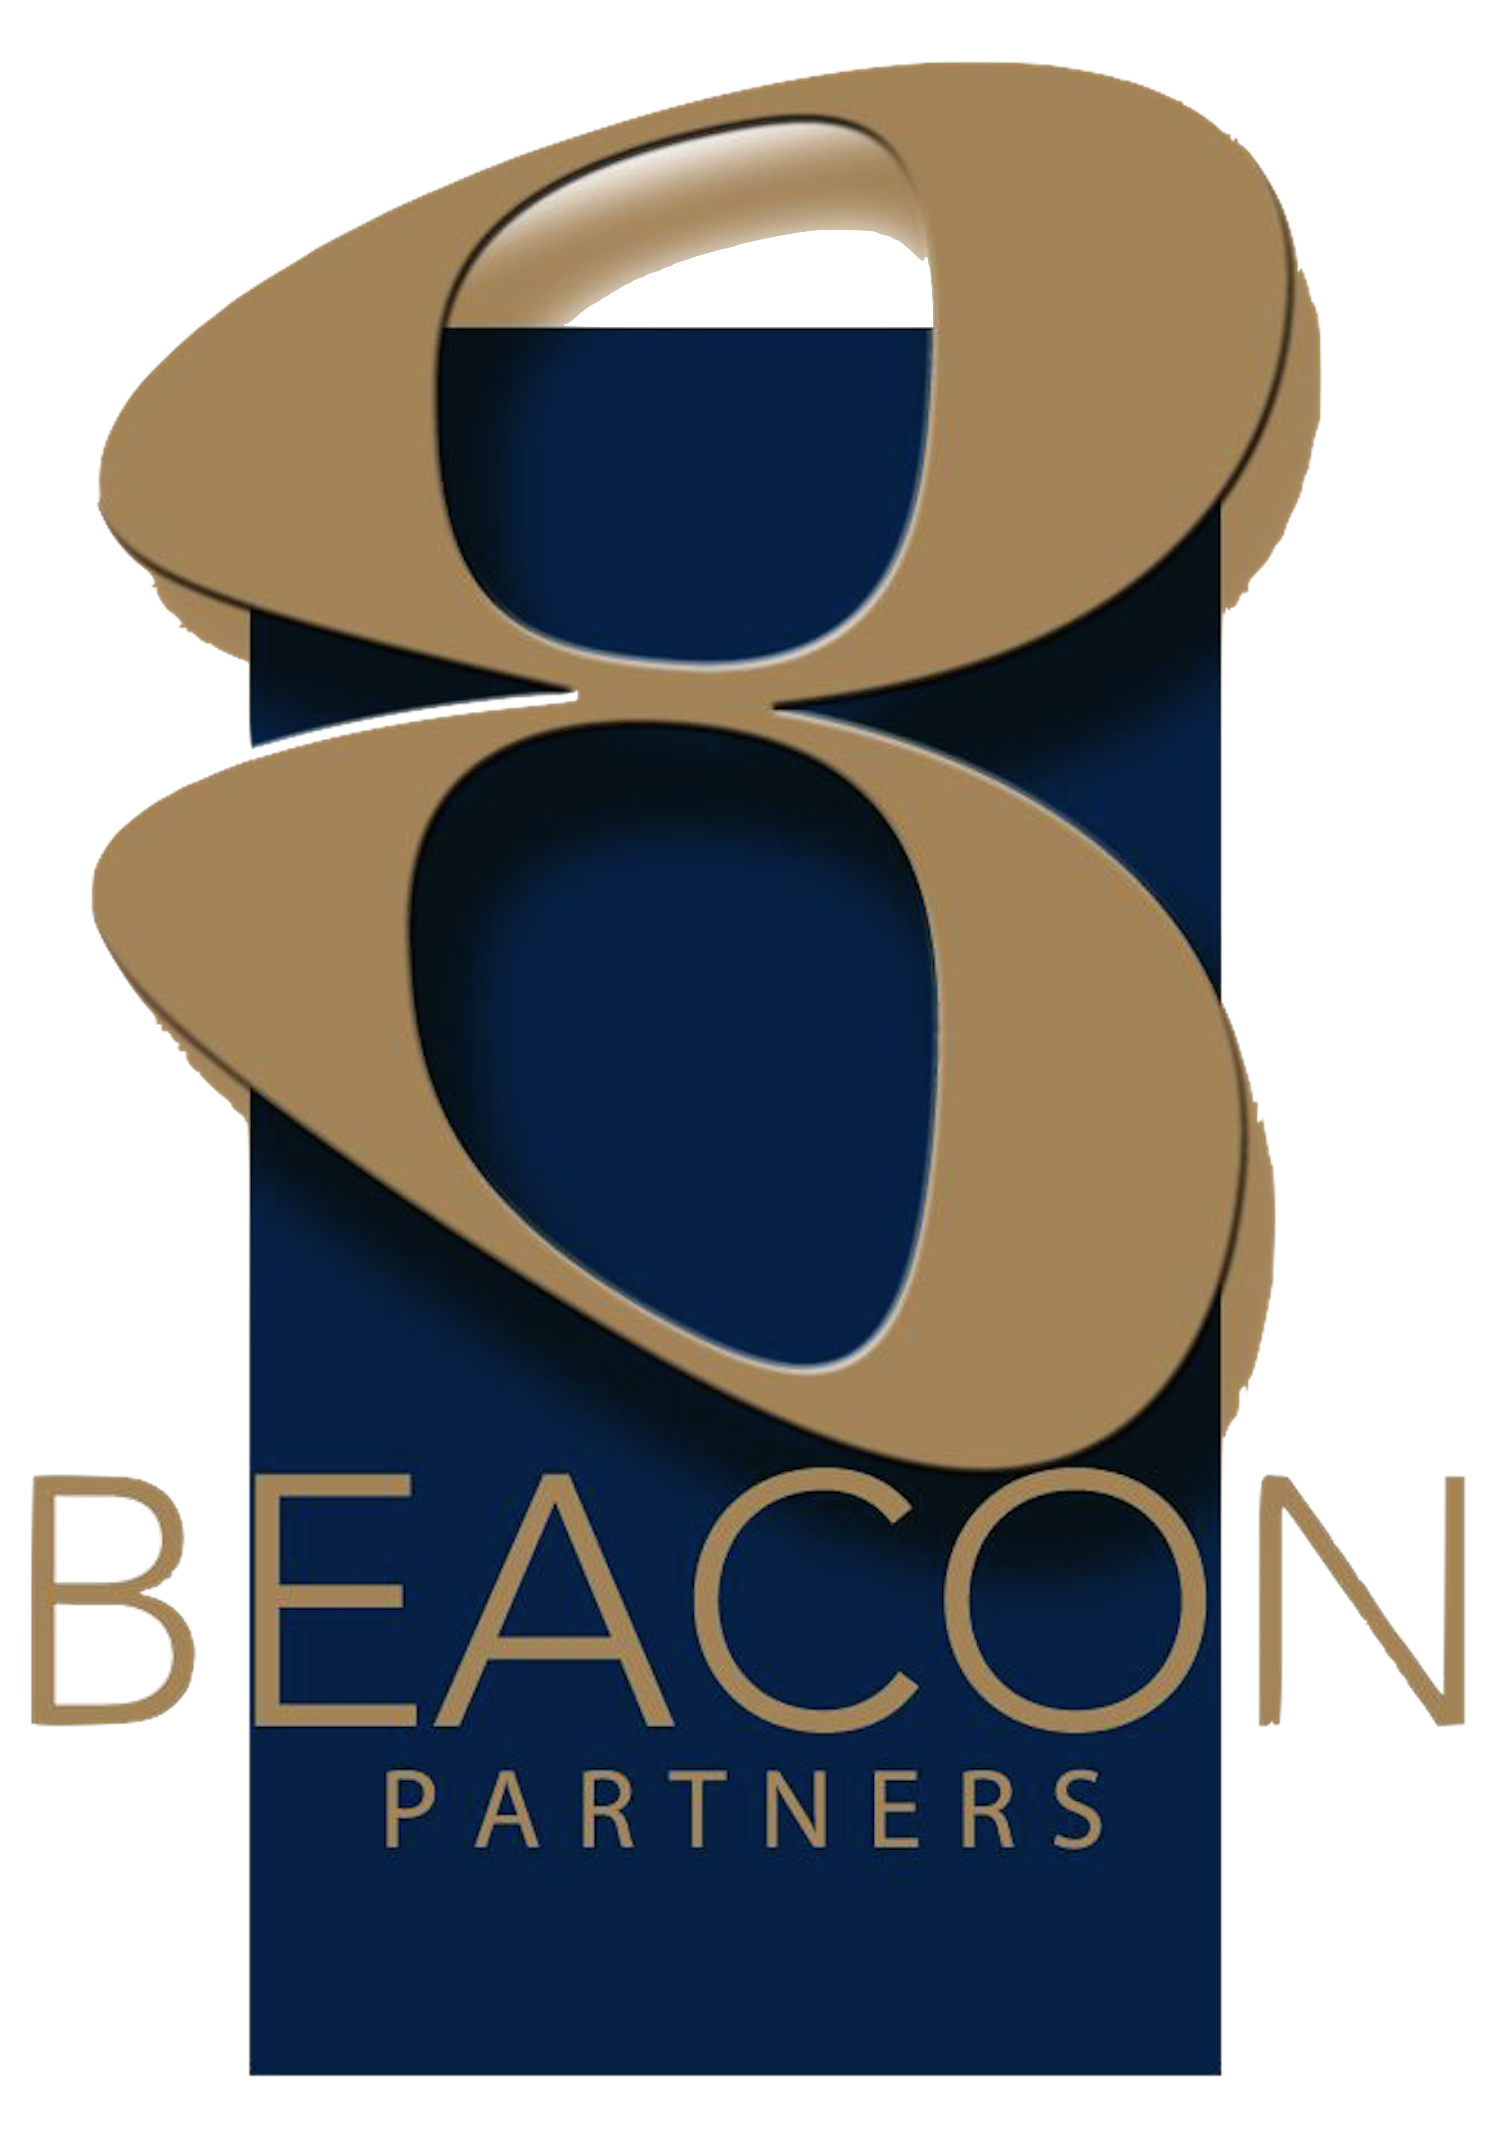 8 Beacon Partners